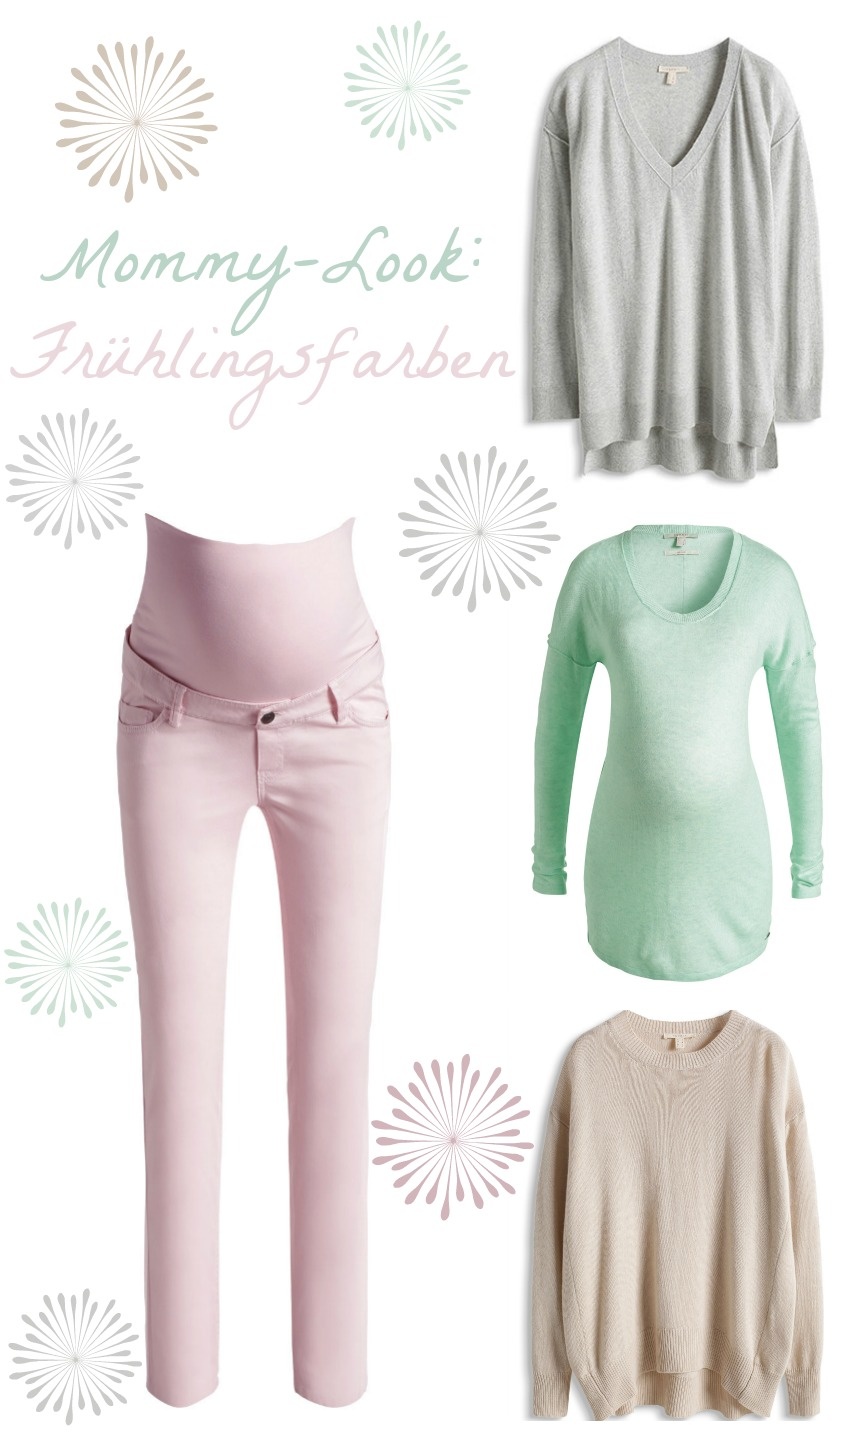 MommyLook-Esprit